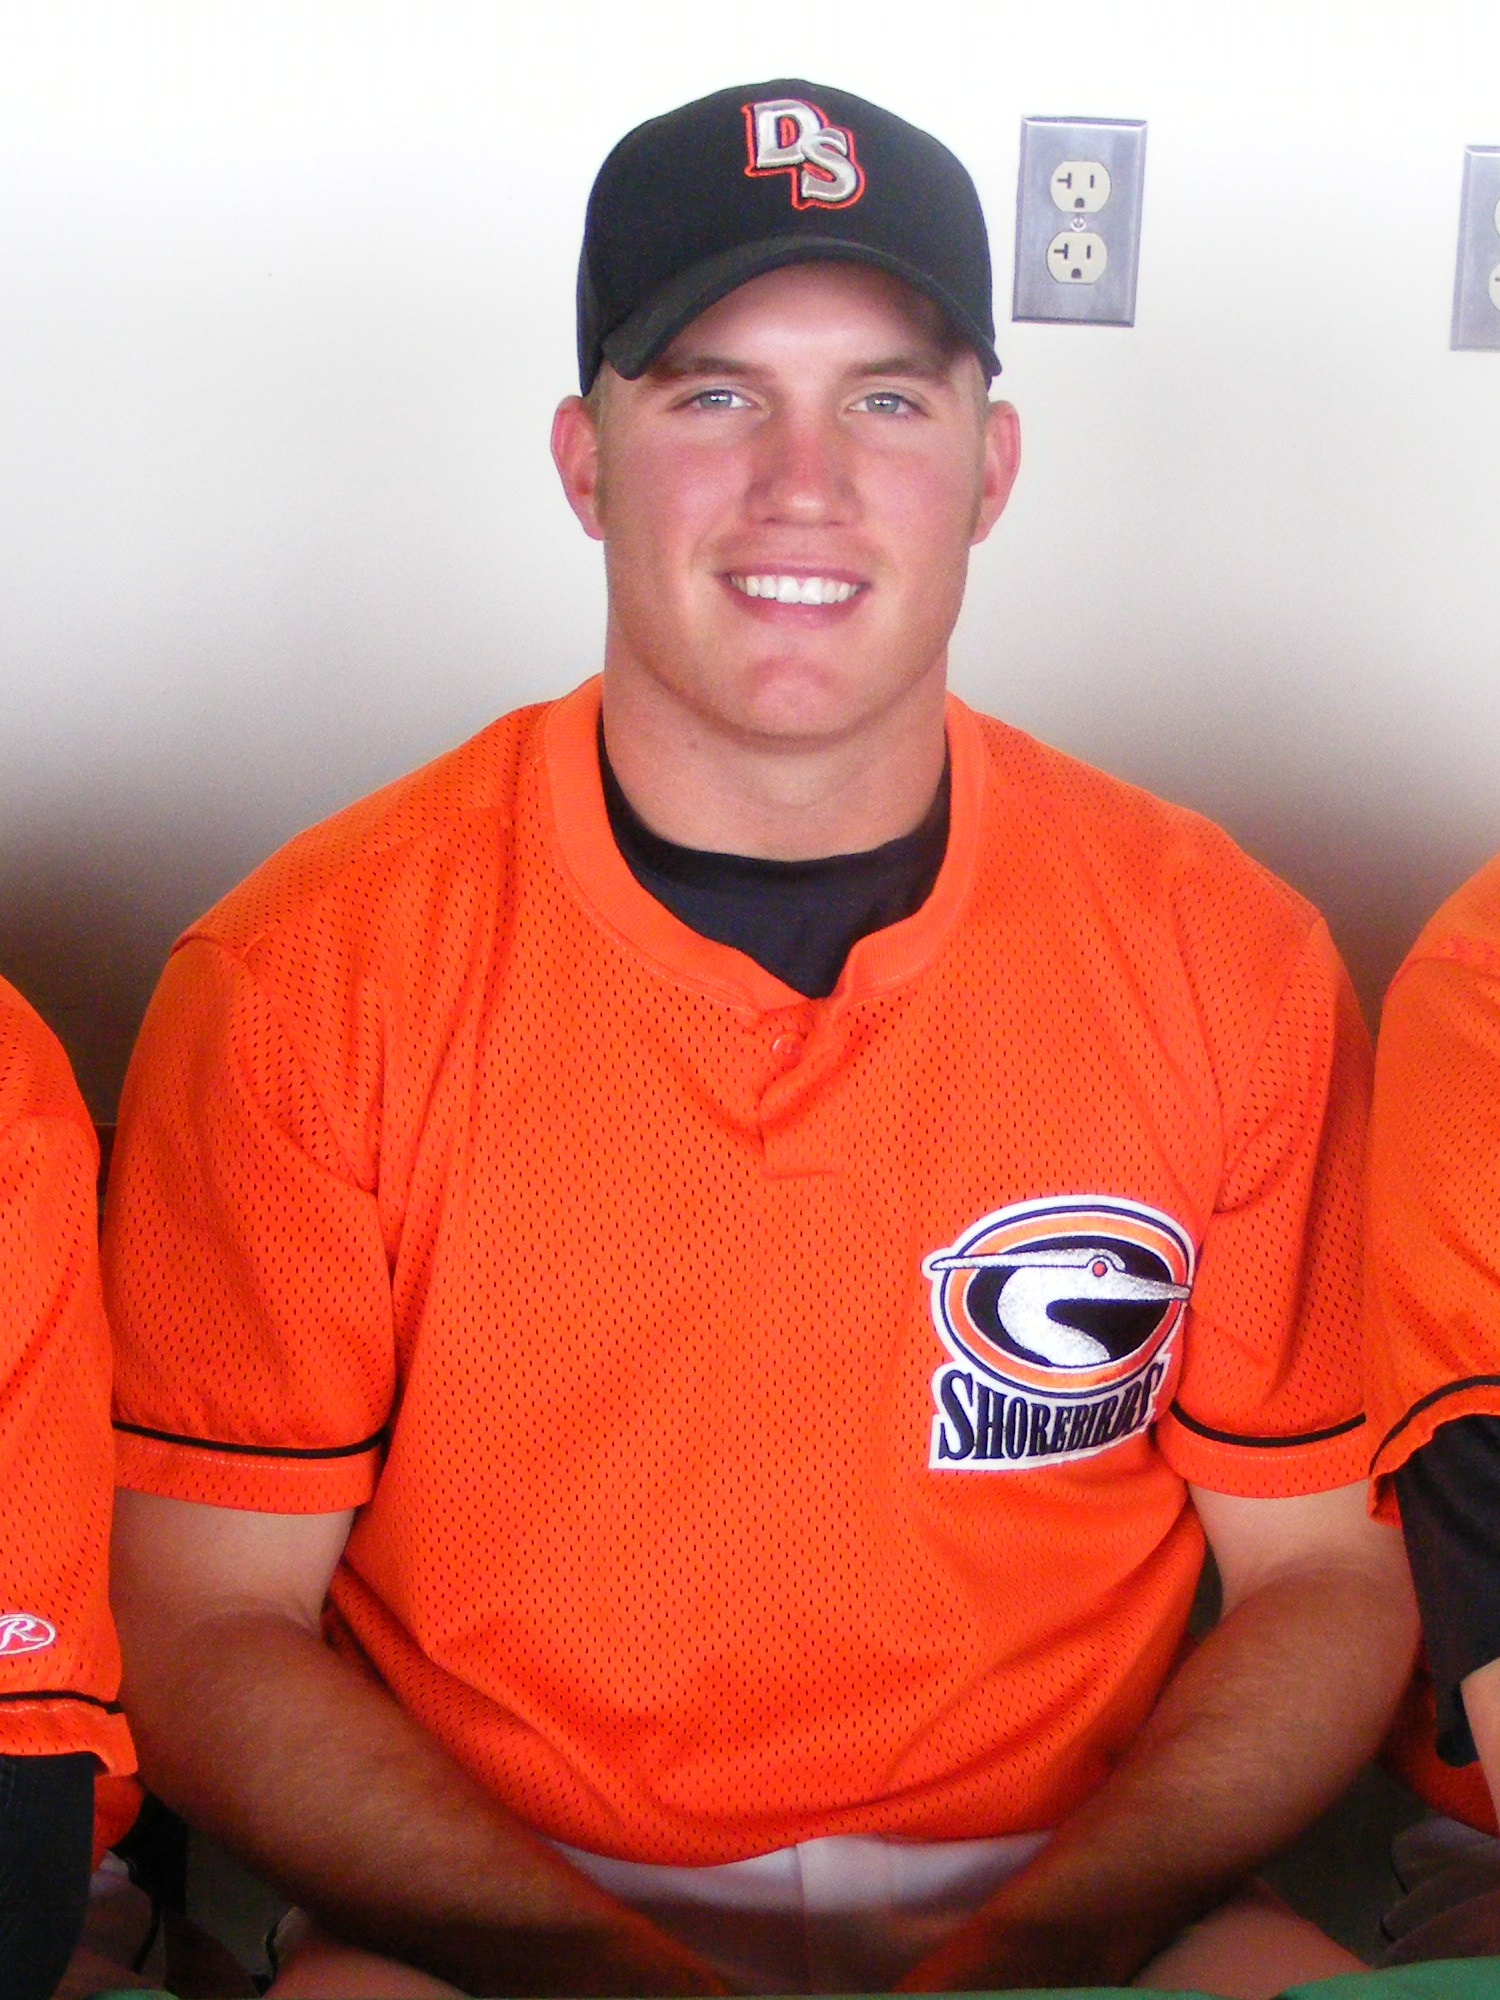 Bobby Bundy posed for this shot during a Meet the Players lunch in April.